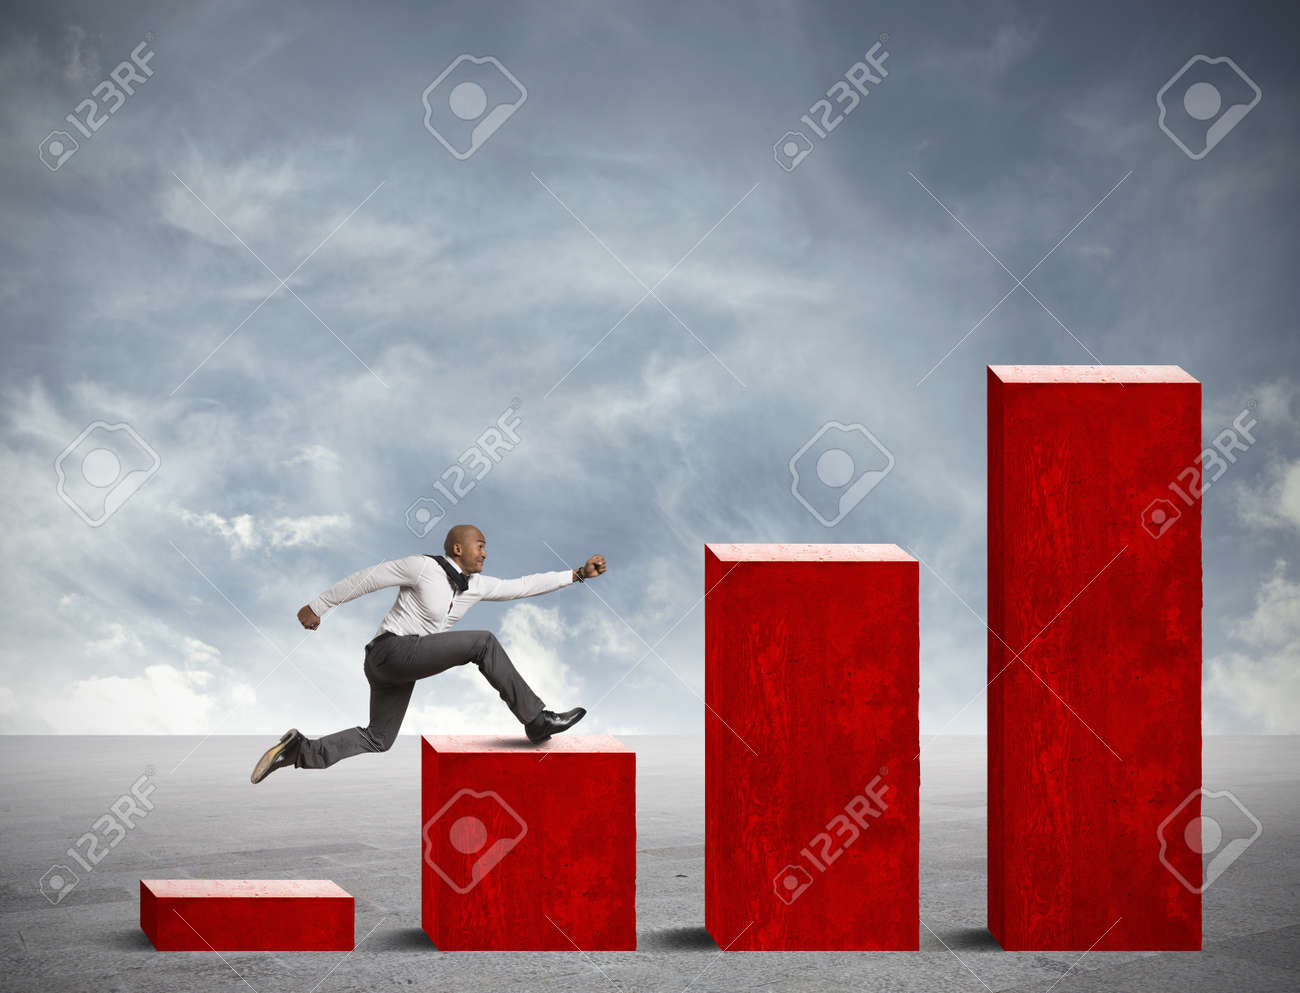 Concept of competition in business with running businessman - 18575474